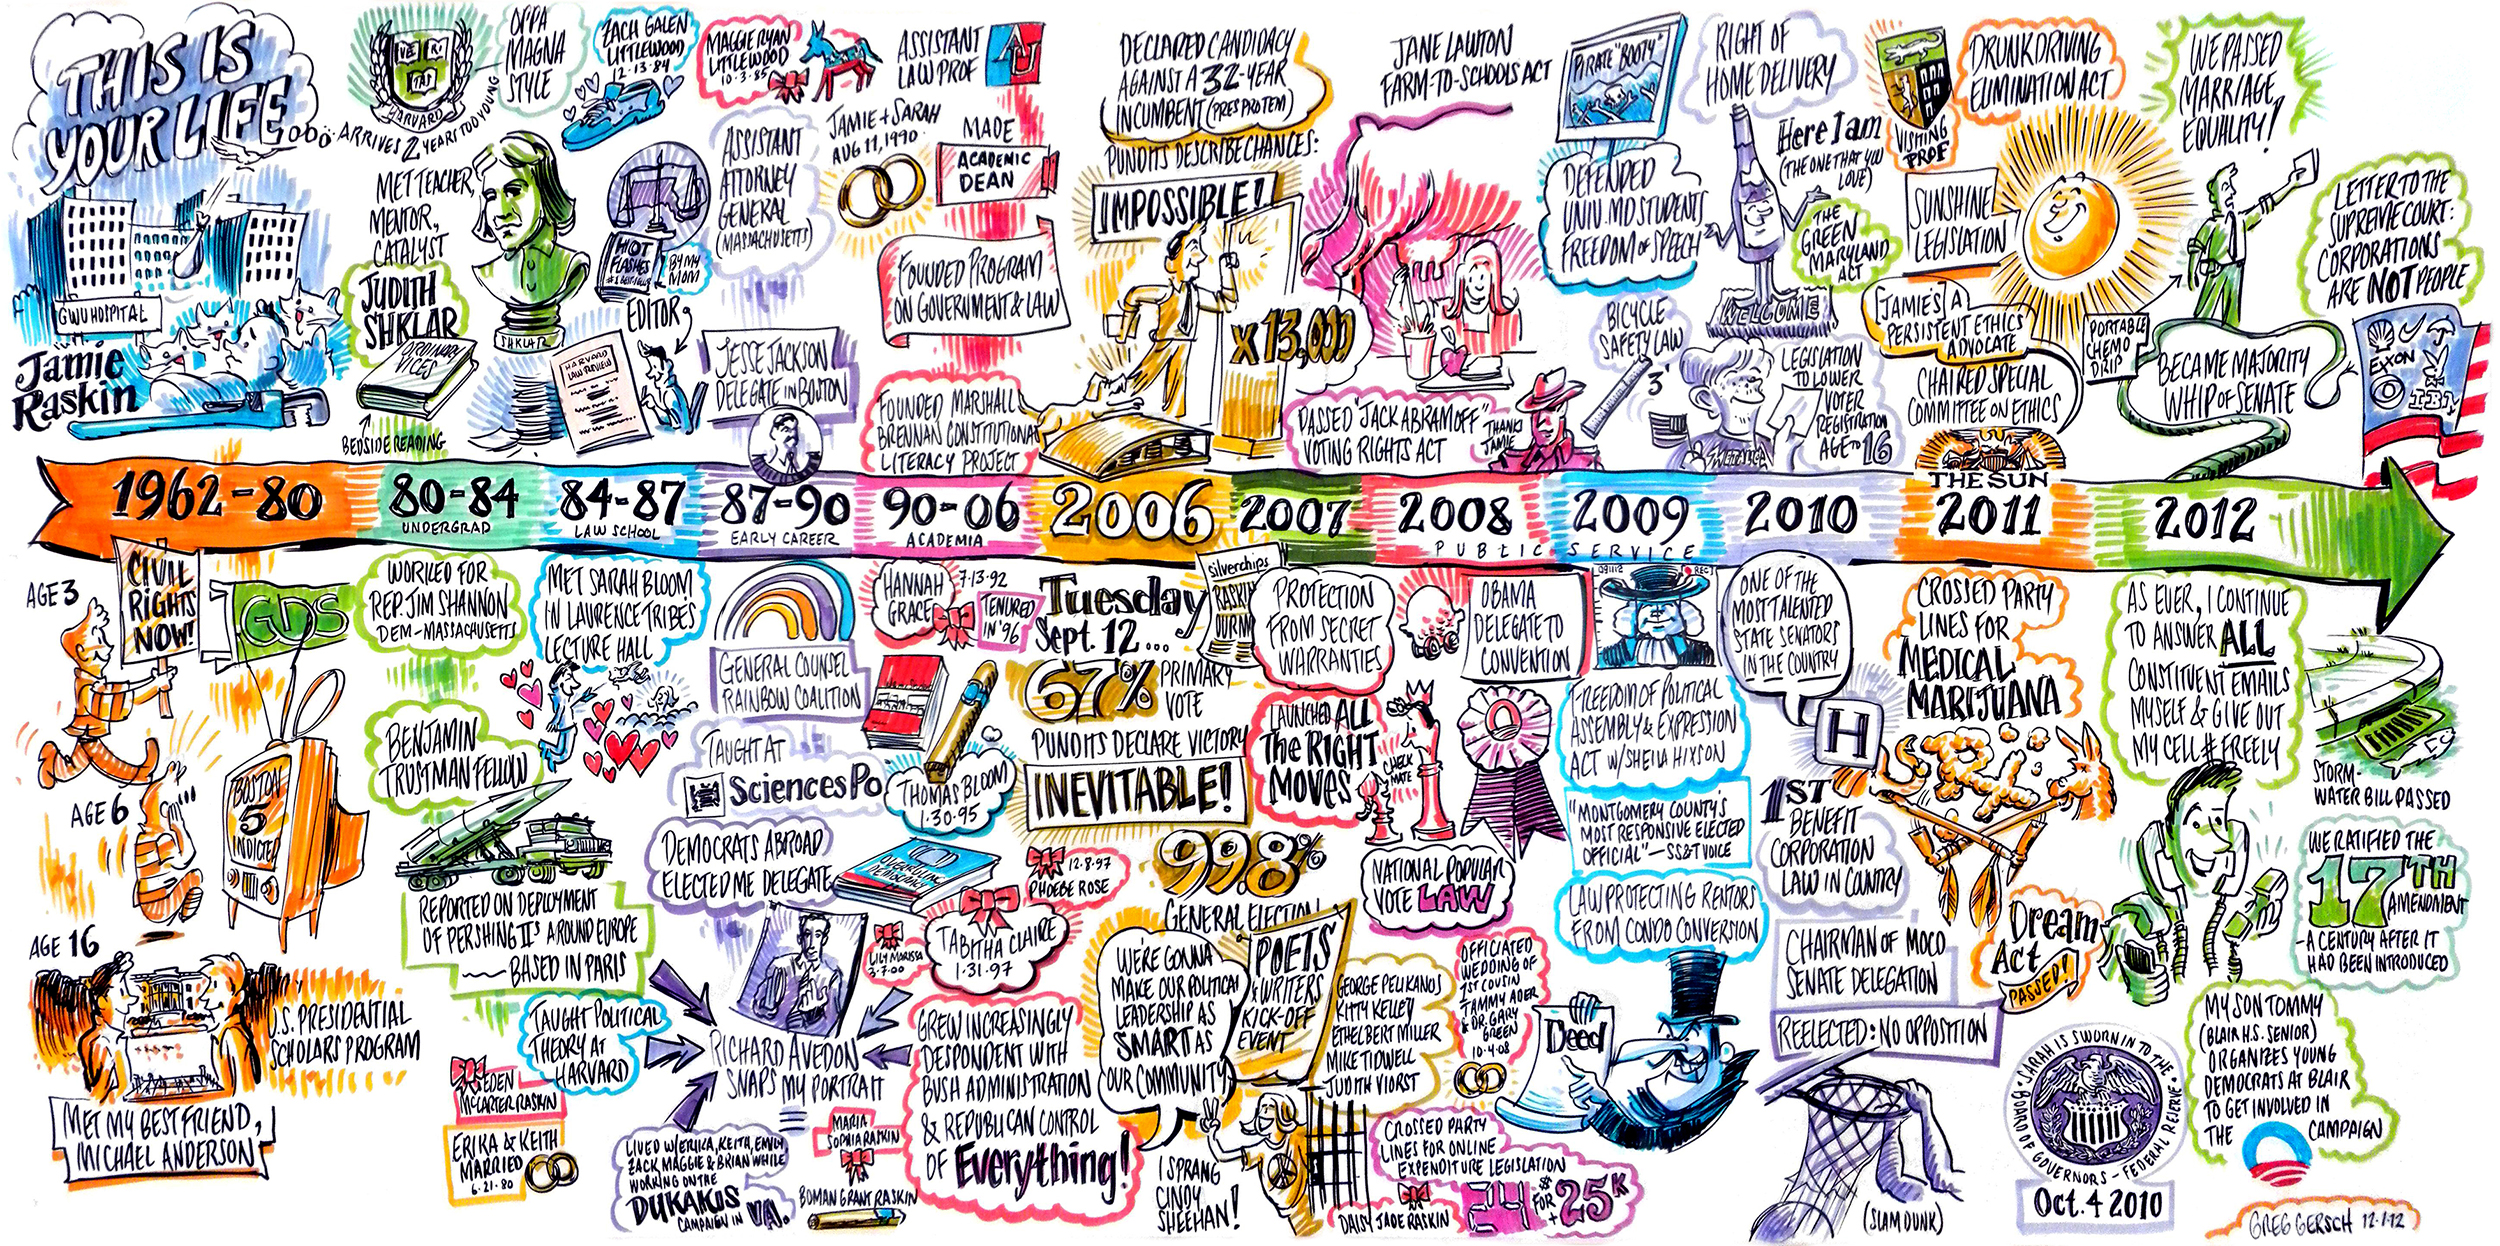 Graphic Recording - Private Event: Commemorating Congressman Jamie Raskin - 4' x 8'